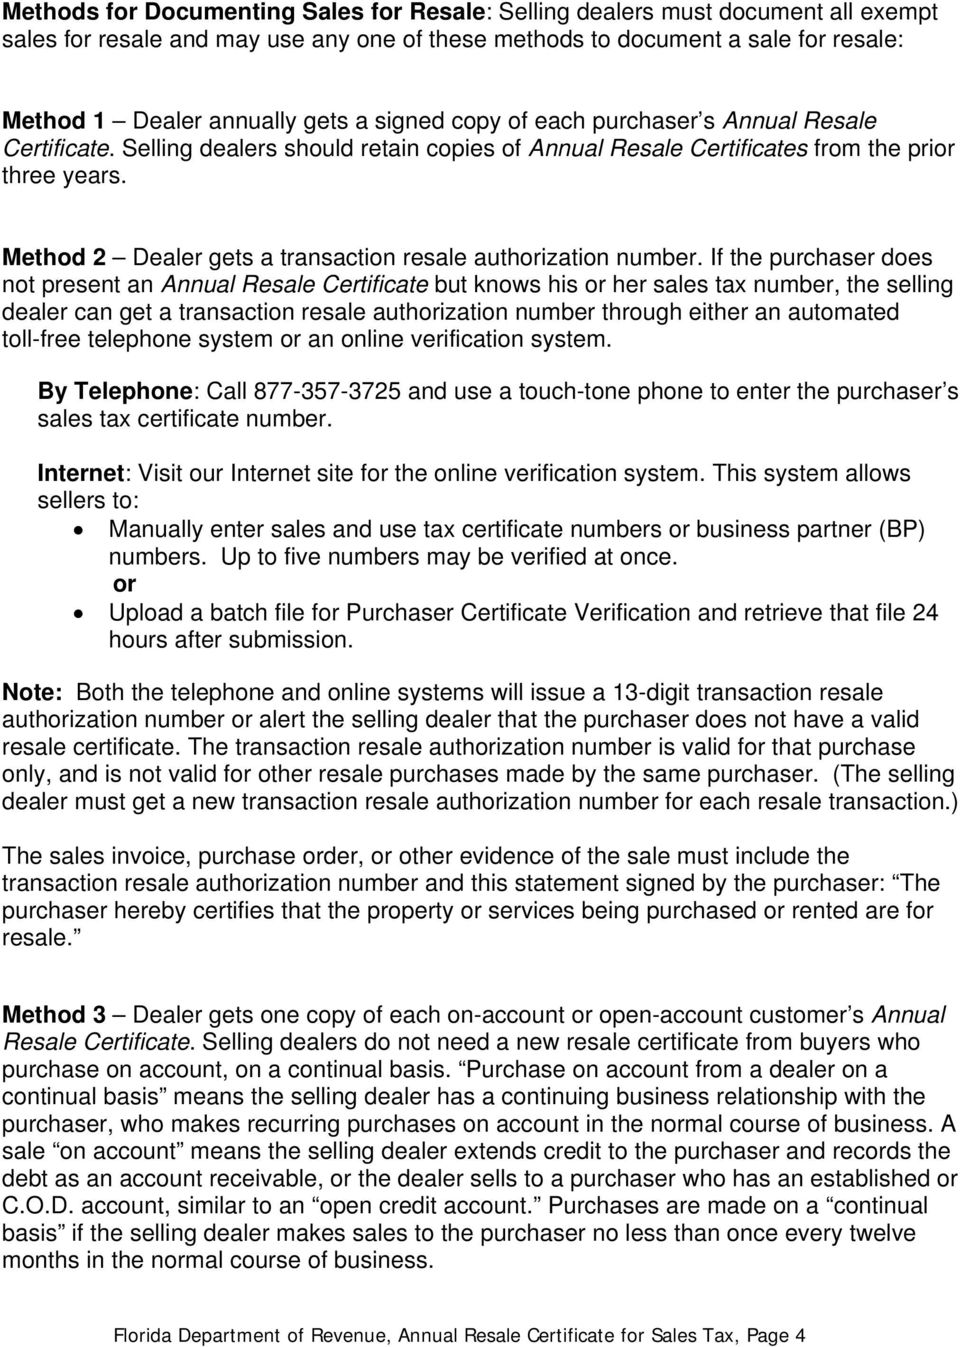 Annual Resale Certificate For Sales Tax Guidelines To Help Business